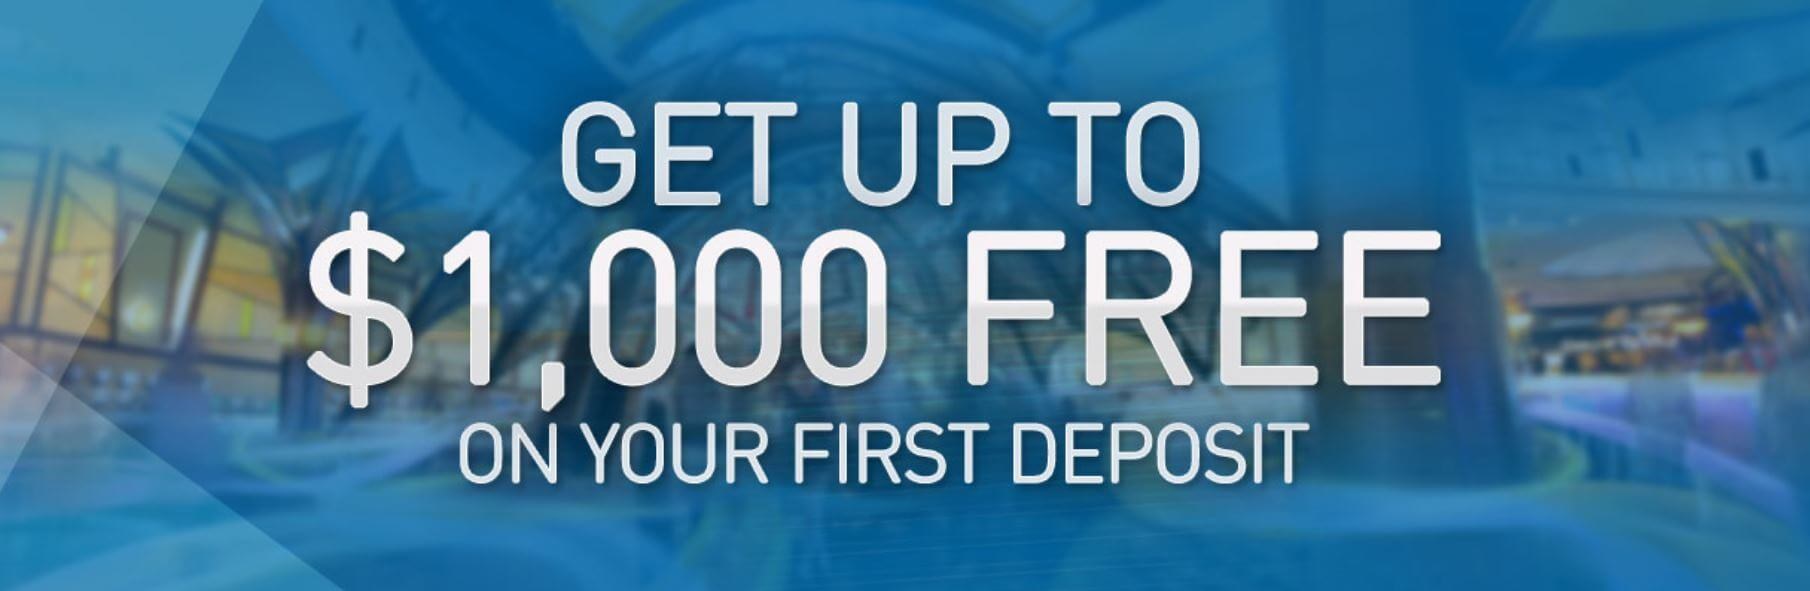 Mohegan Sun Promo Code bonus offer - Get up to $1000 free on your first deposit - Terms and conditions apply - Clicking on this link will take you to the Mohegan Sun Casino website - Terms and conditions apply